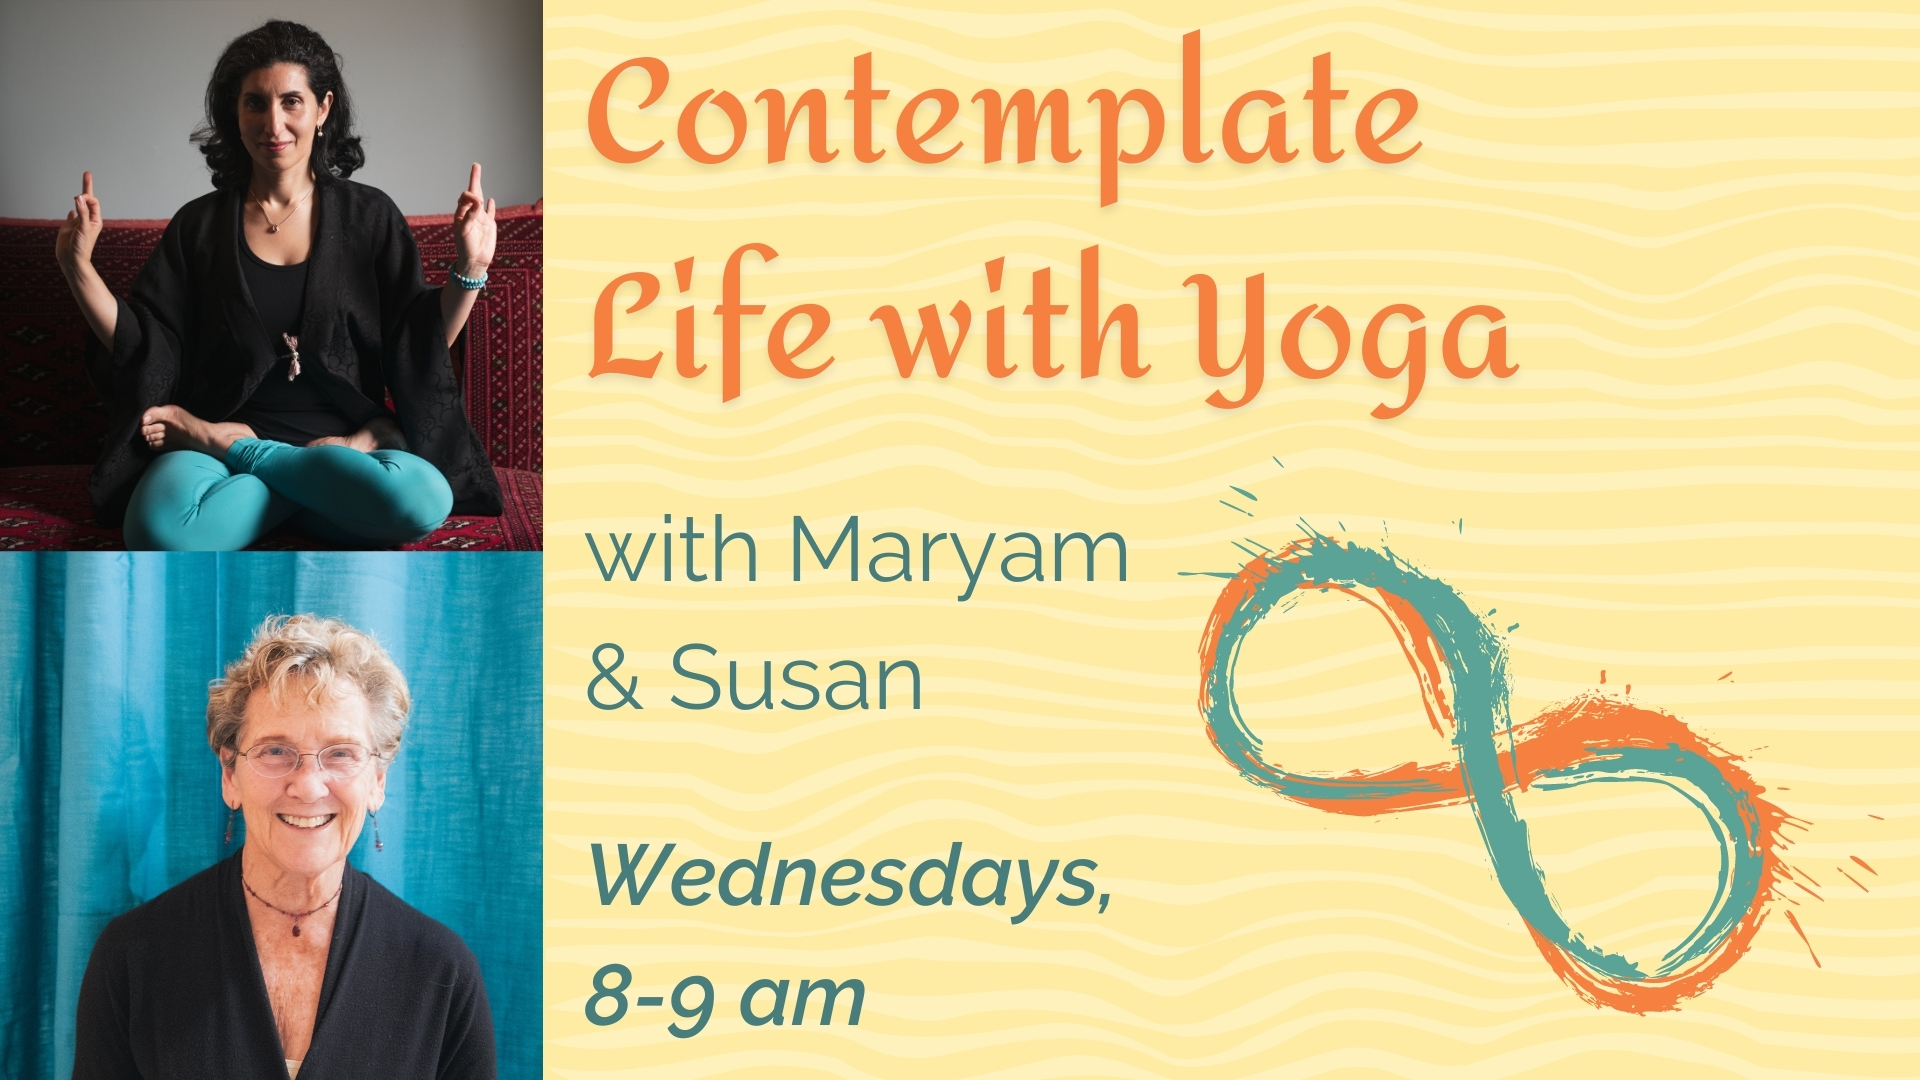 Contemplate Life with Yoga